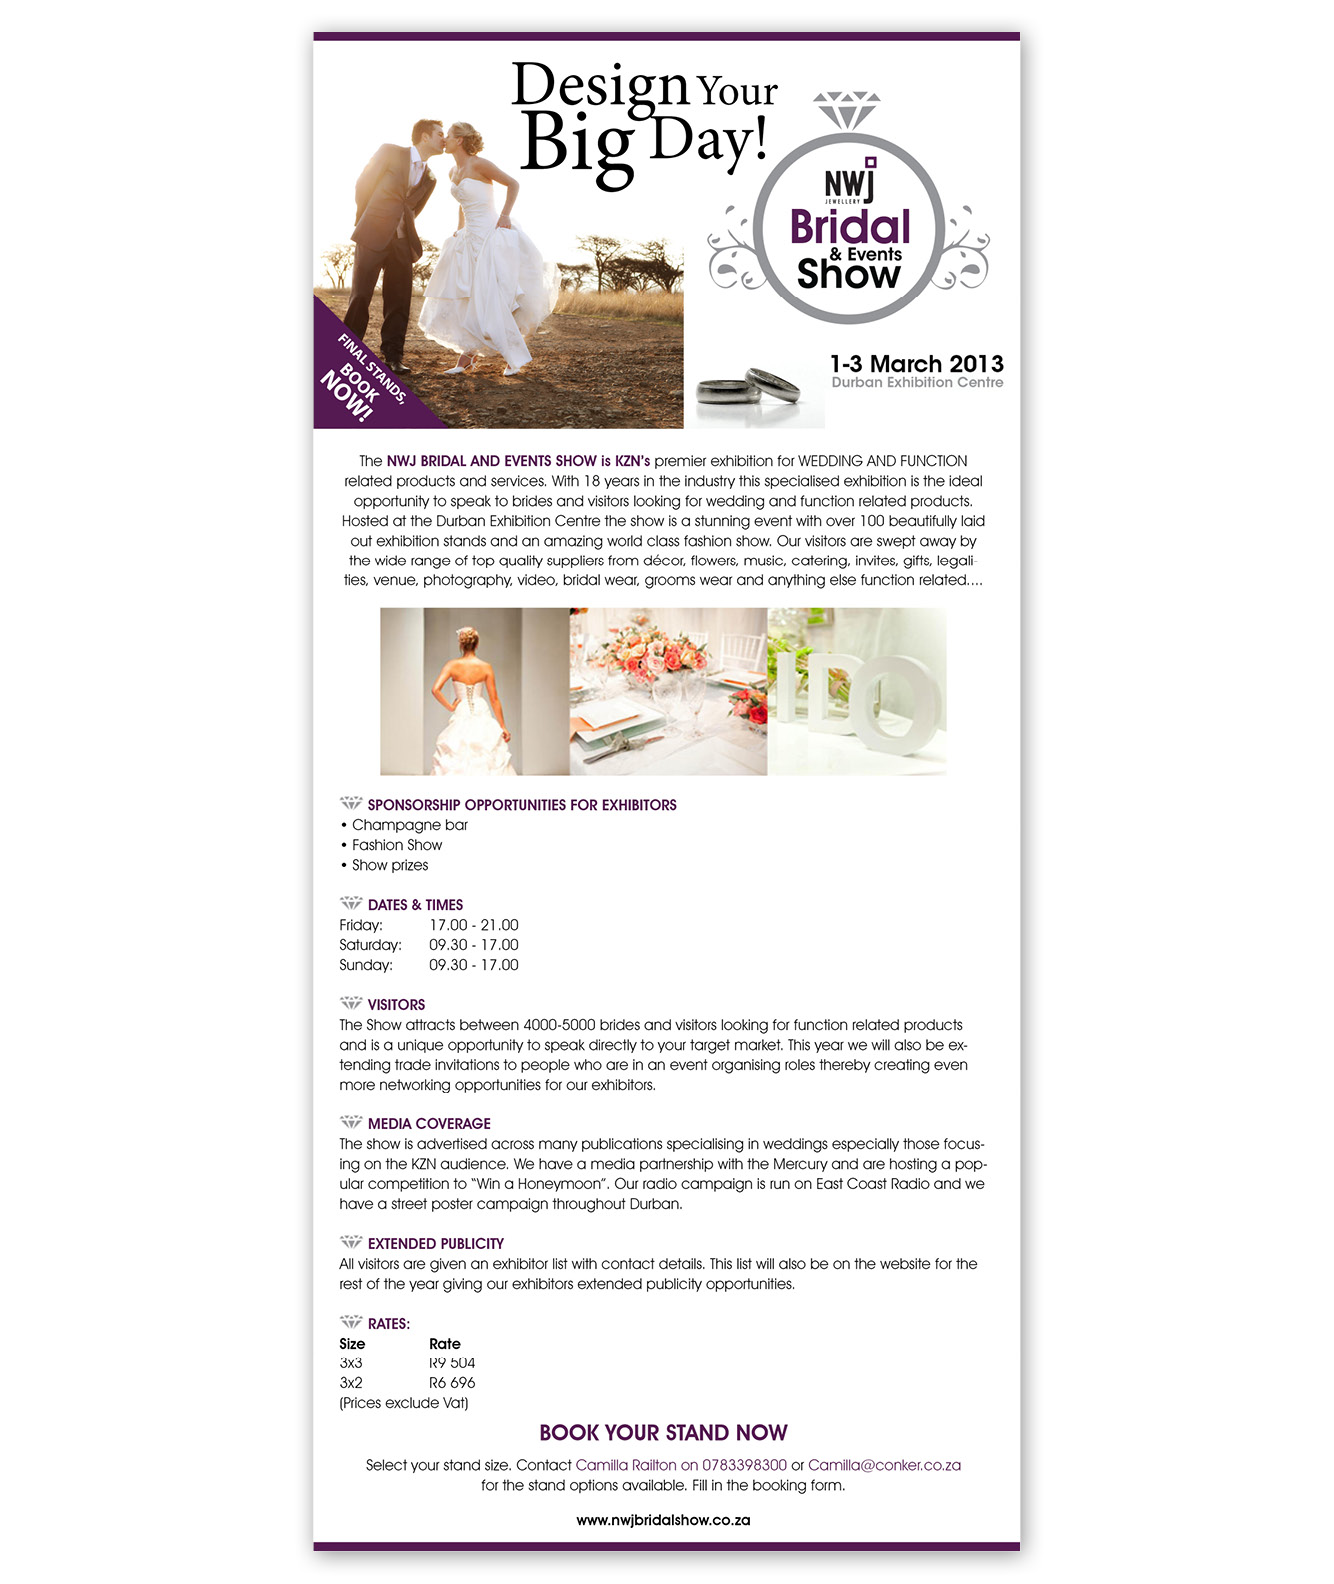 NWJ Bridal and Events Show Newsletter Design